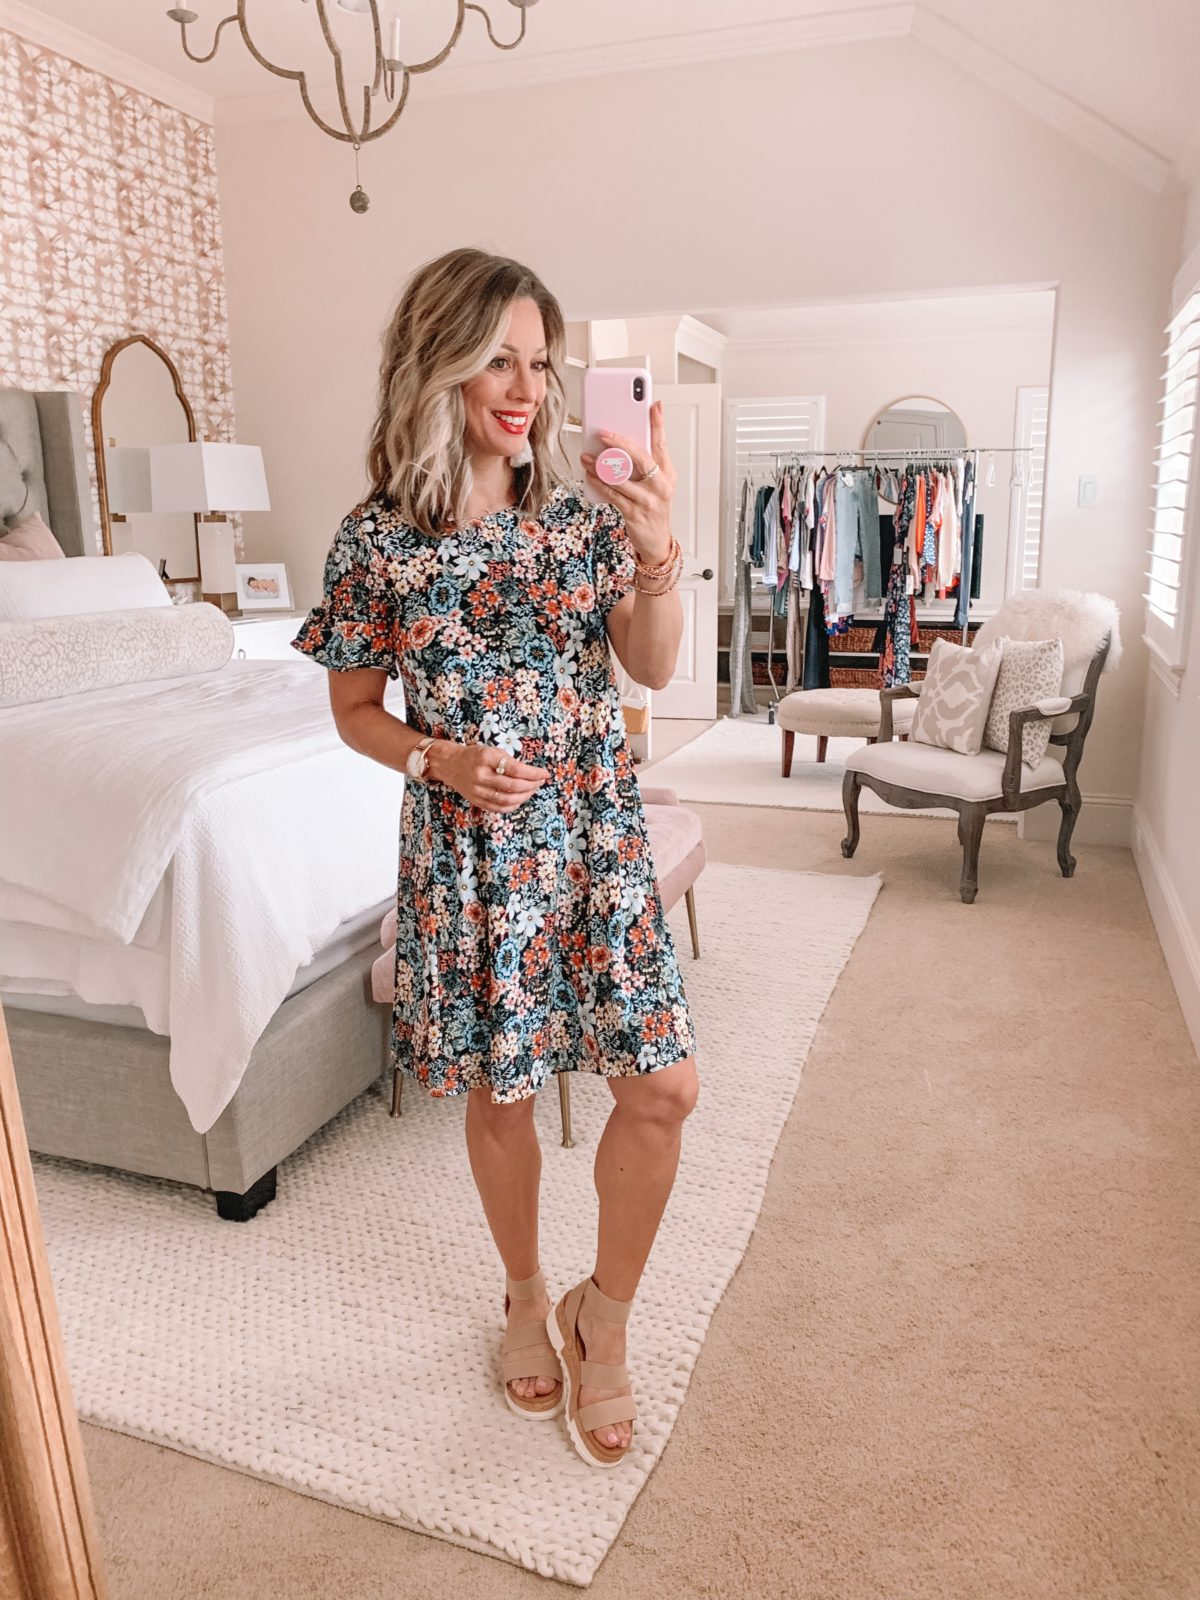 Dressing Room Fashion Finds Nordstrom & LOFT, Floral Swing Dress, Platform Sandals